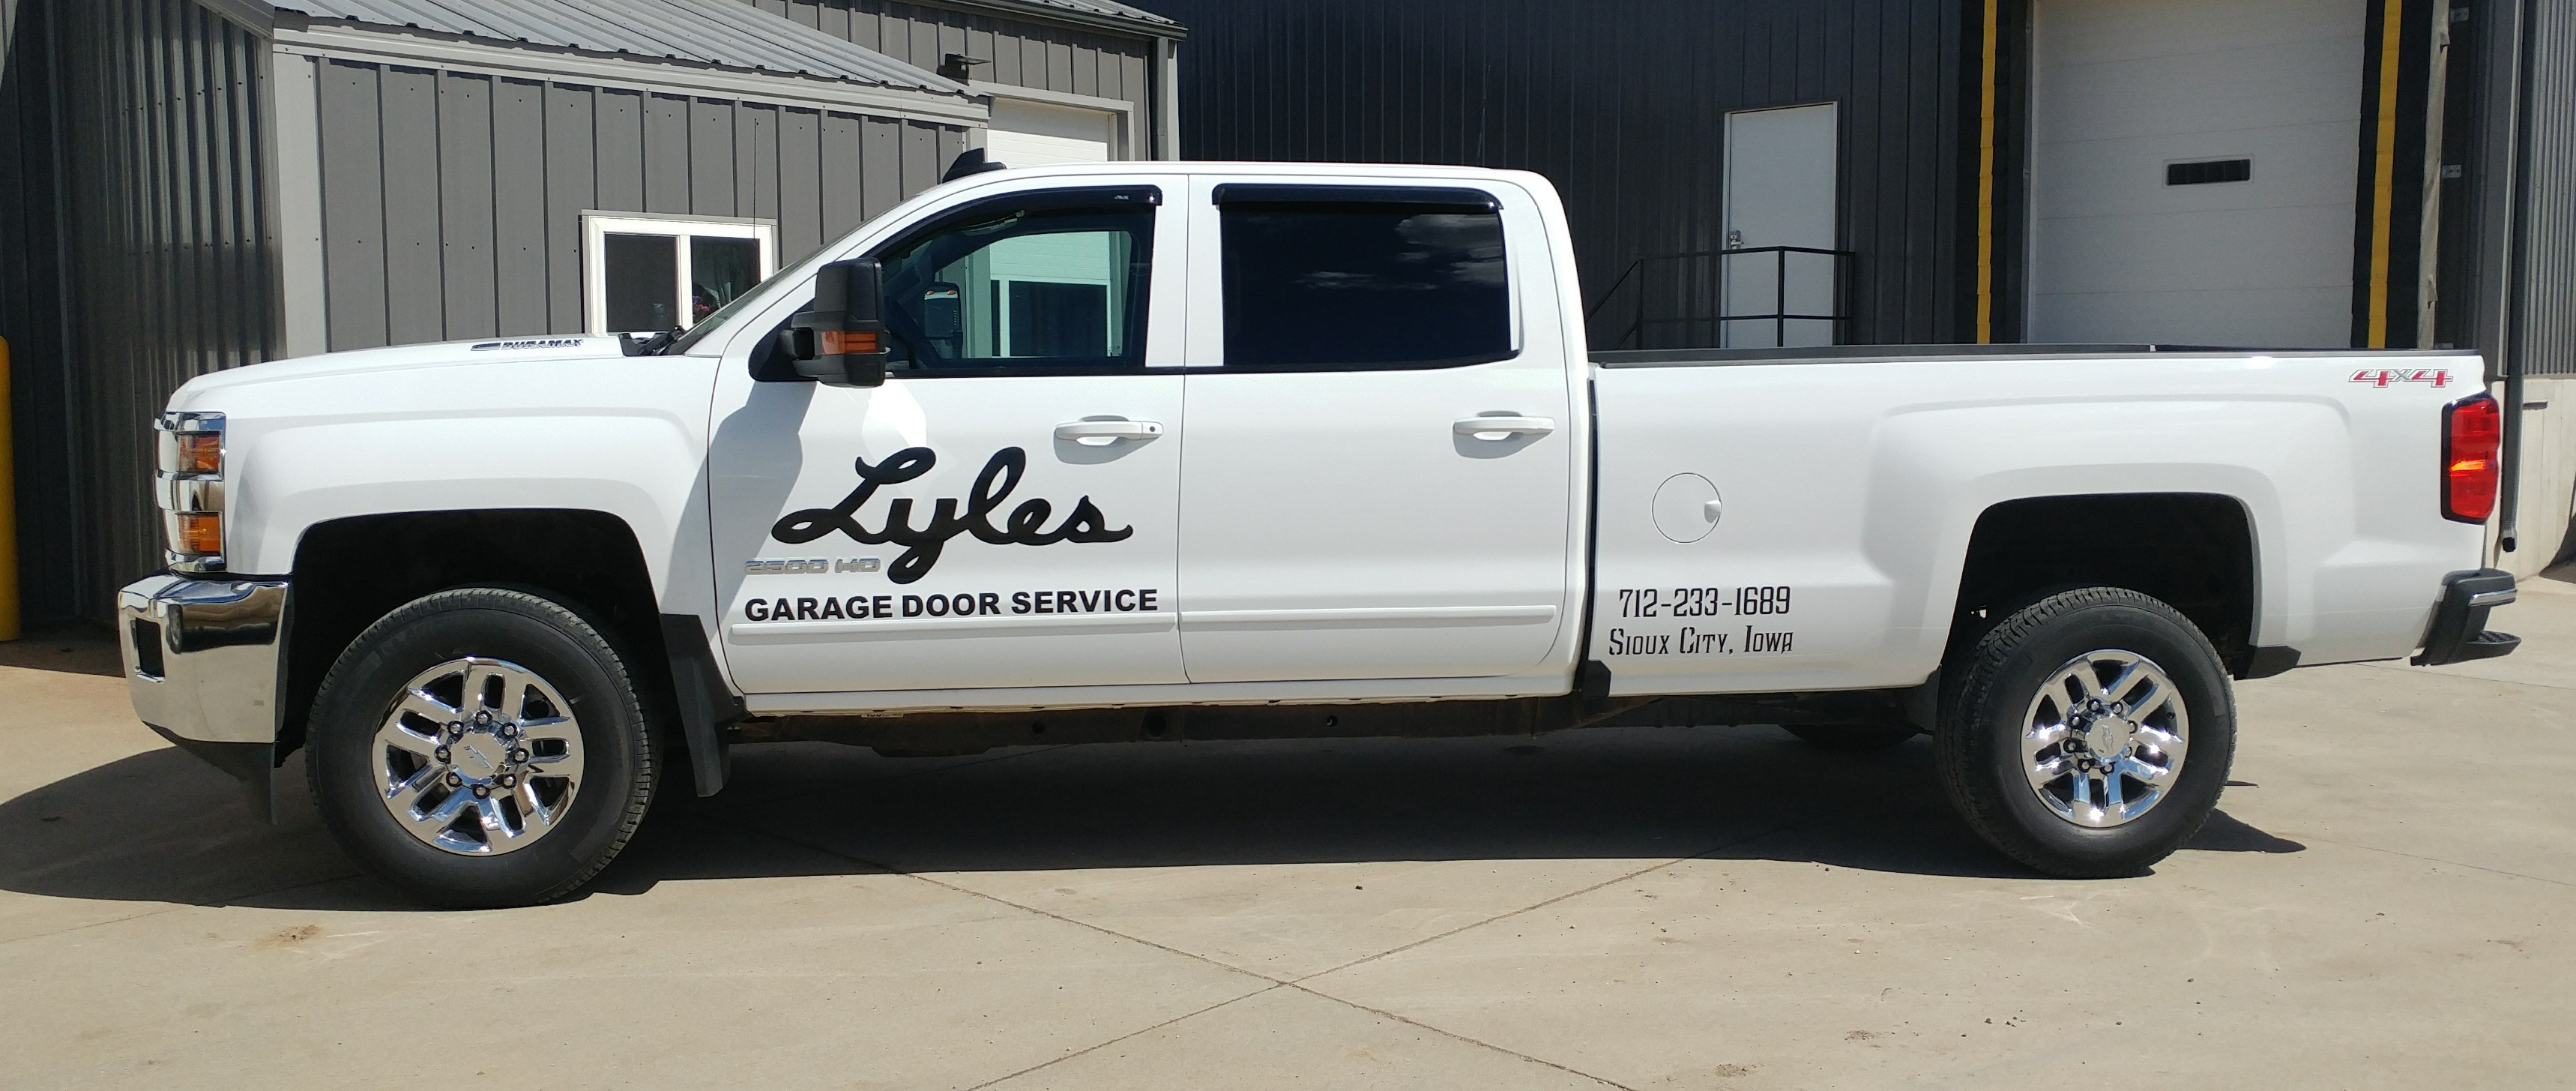 Lyleu0027s Garage Door Service